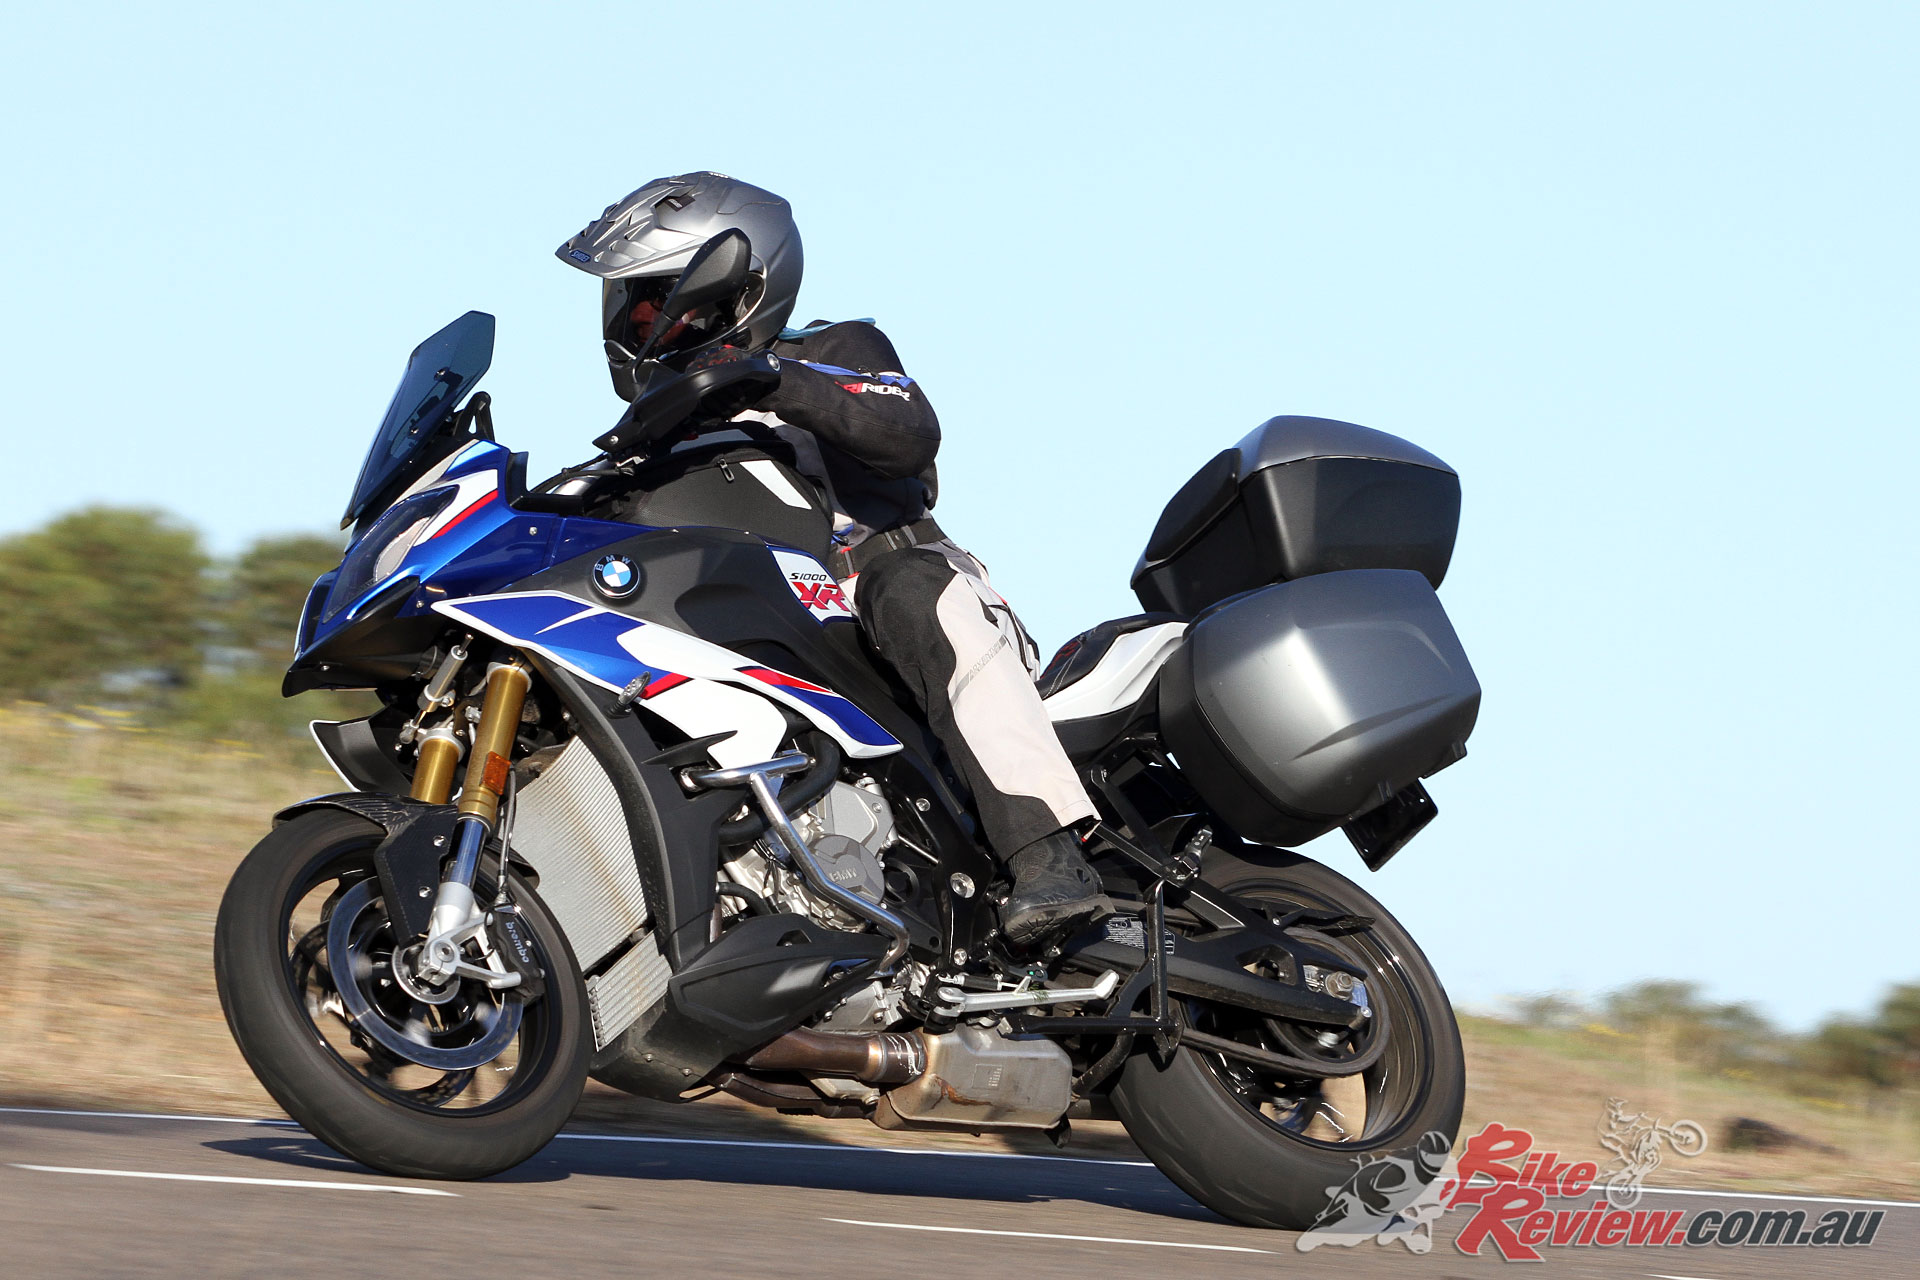 BMW's S 1000 XR will be on of the machines available for a test ride, alongside the S 1000 R and S 1000 RR